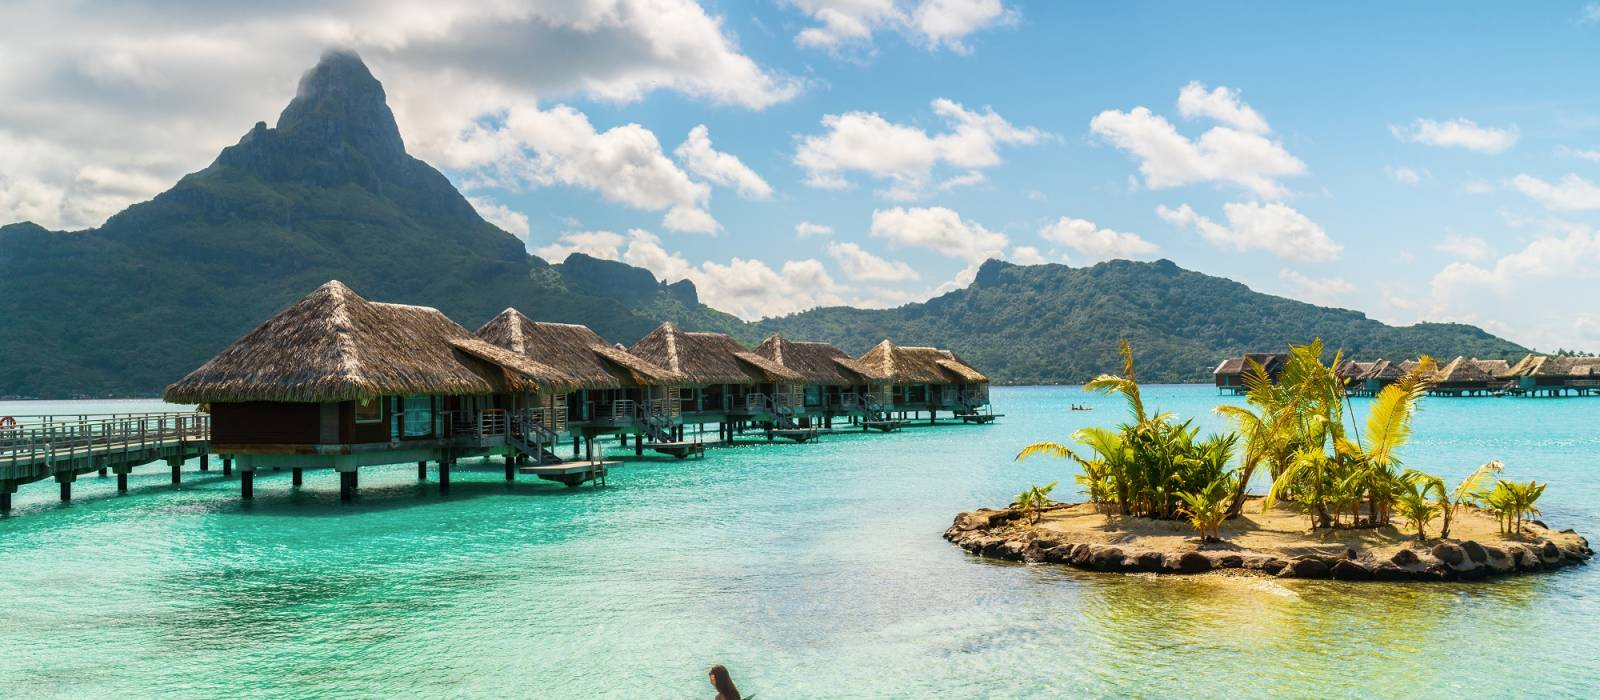 Secrets of the South Pacific: Tahiti, Bora Bora and Blue Lagoon Tour Trip 1